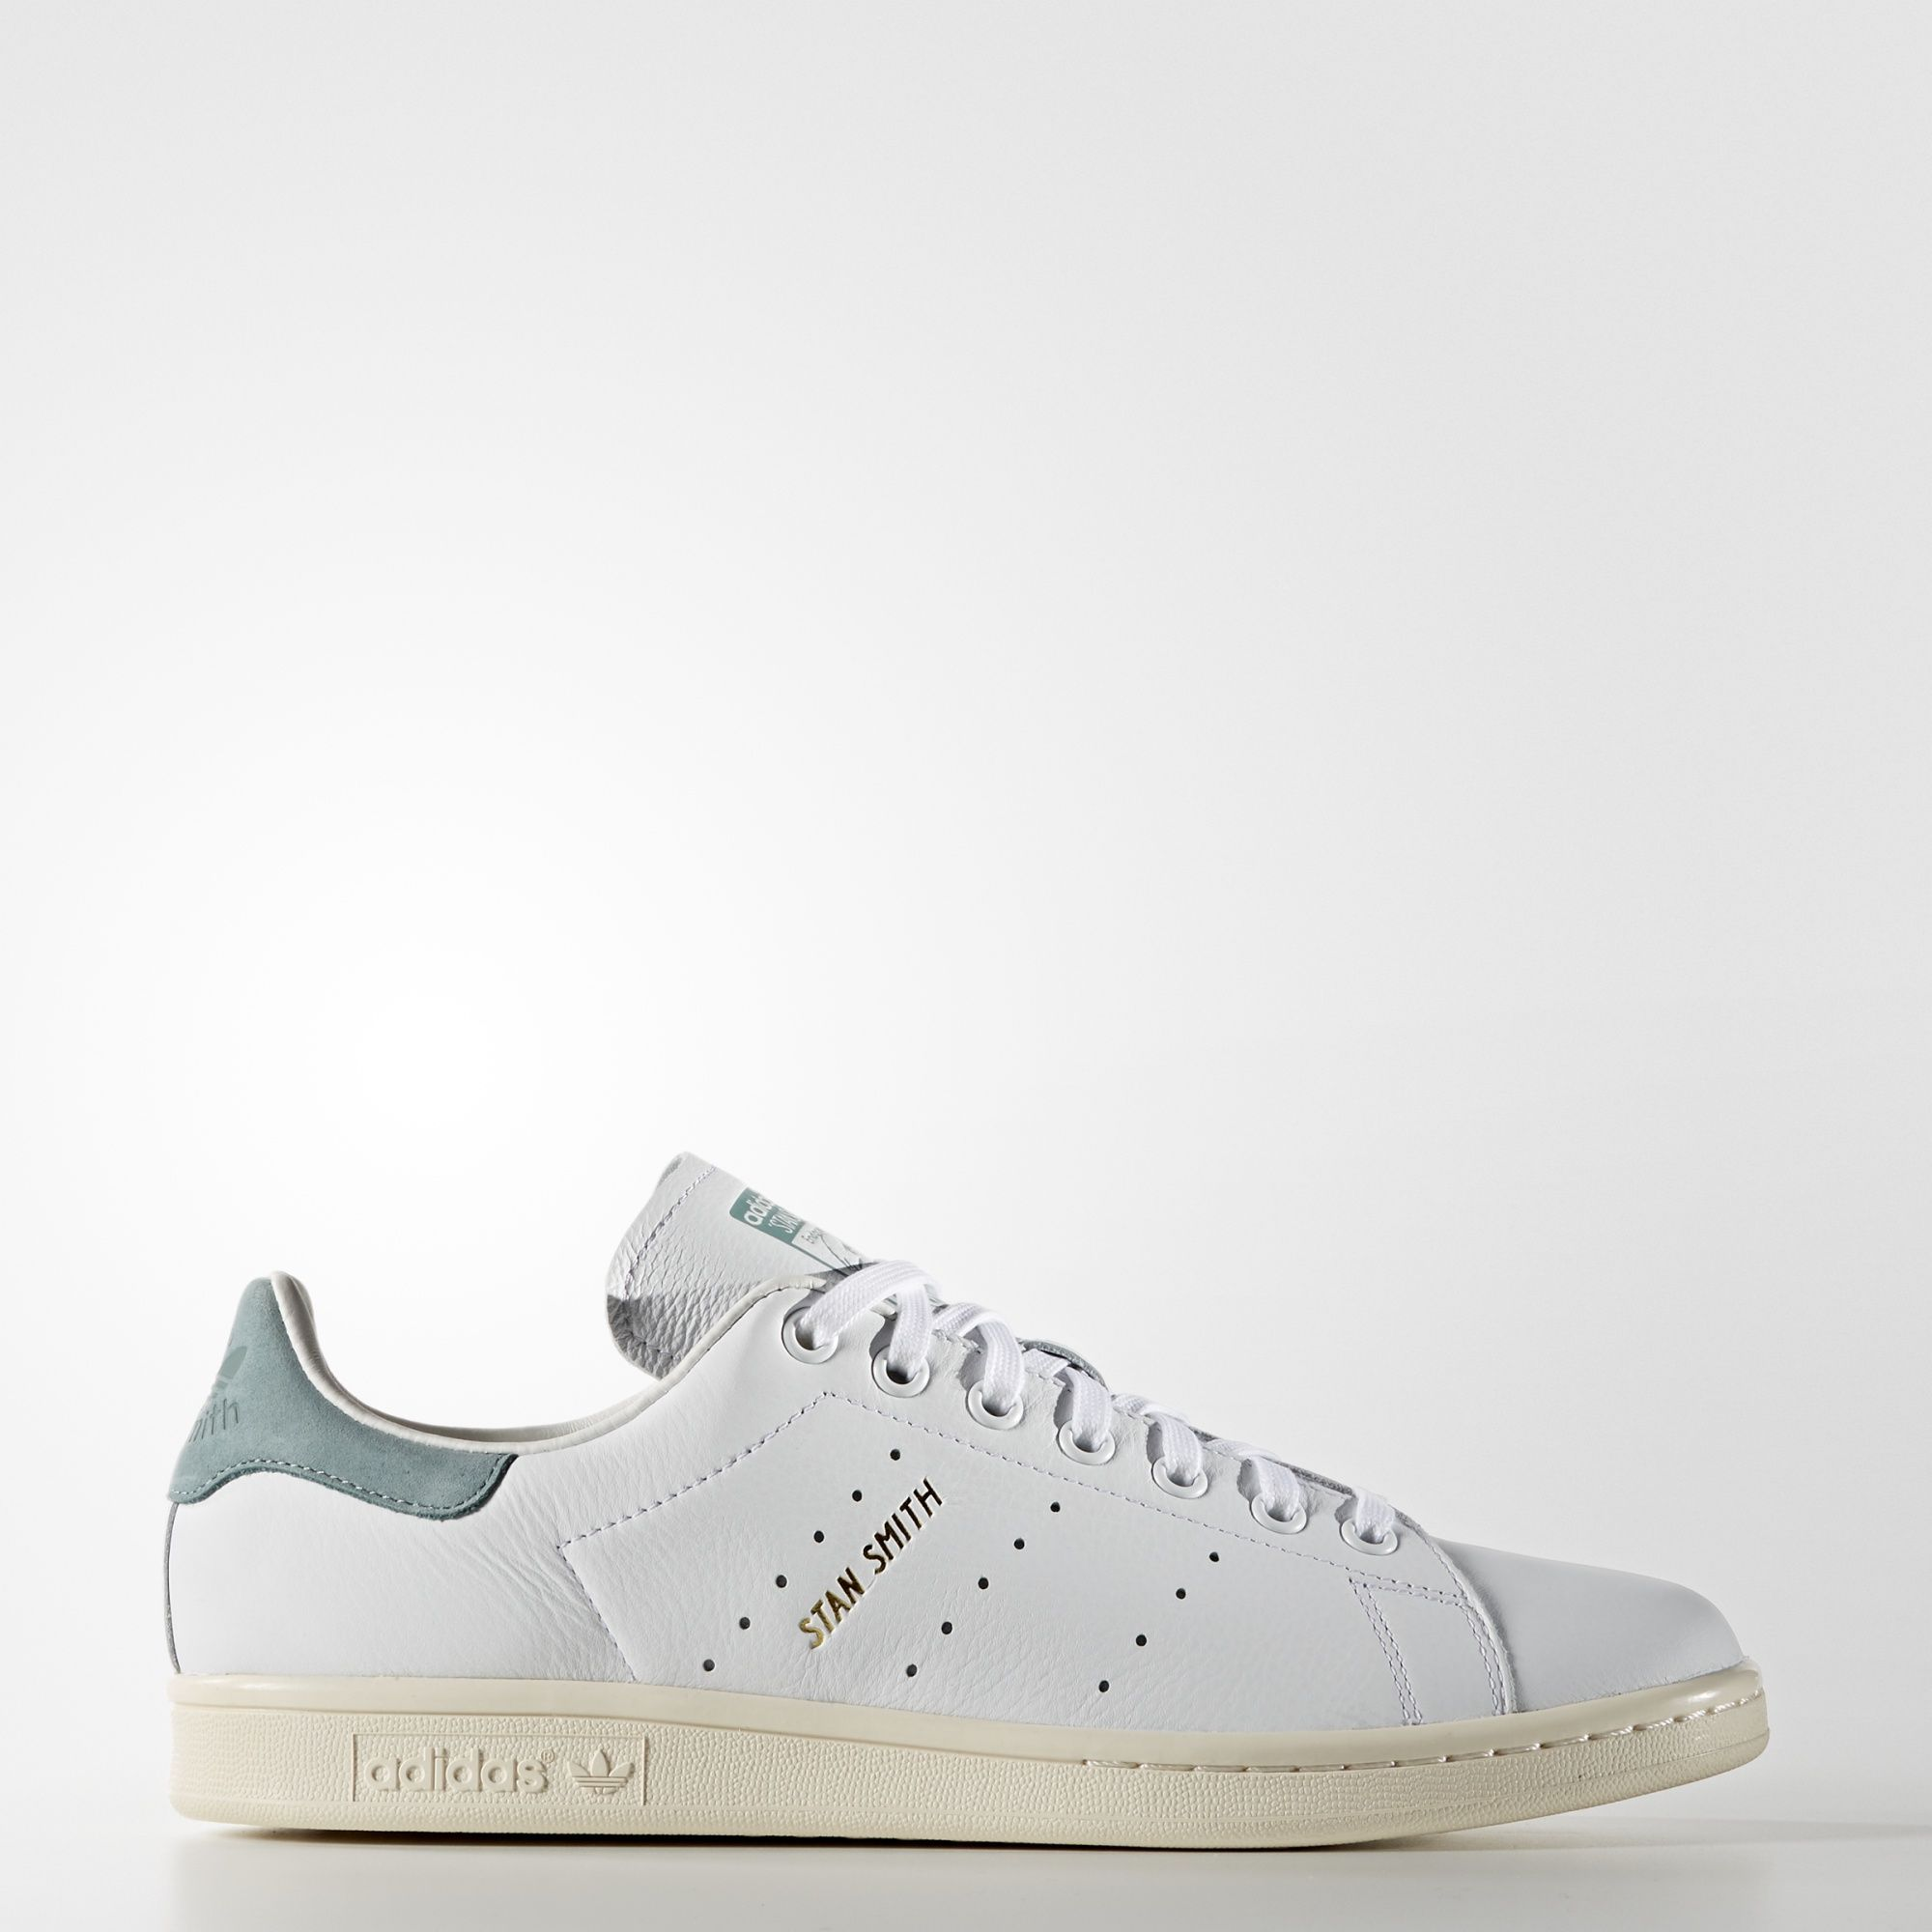 online retailer df89a 76a59 ... denmark shop for stan smith shoes white at adidas. see all the styles  and colours